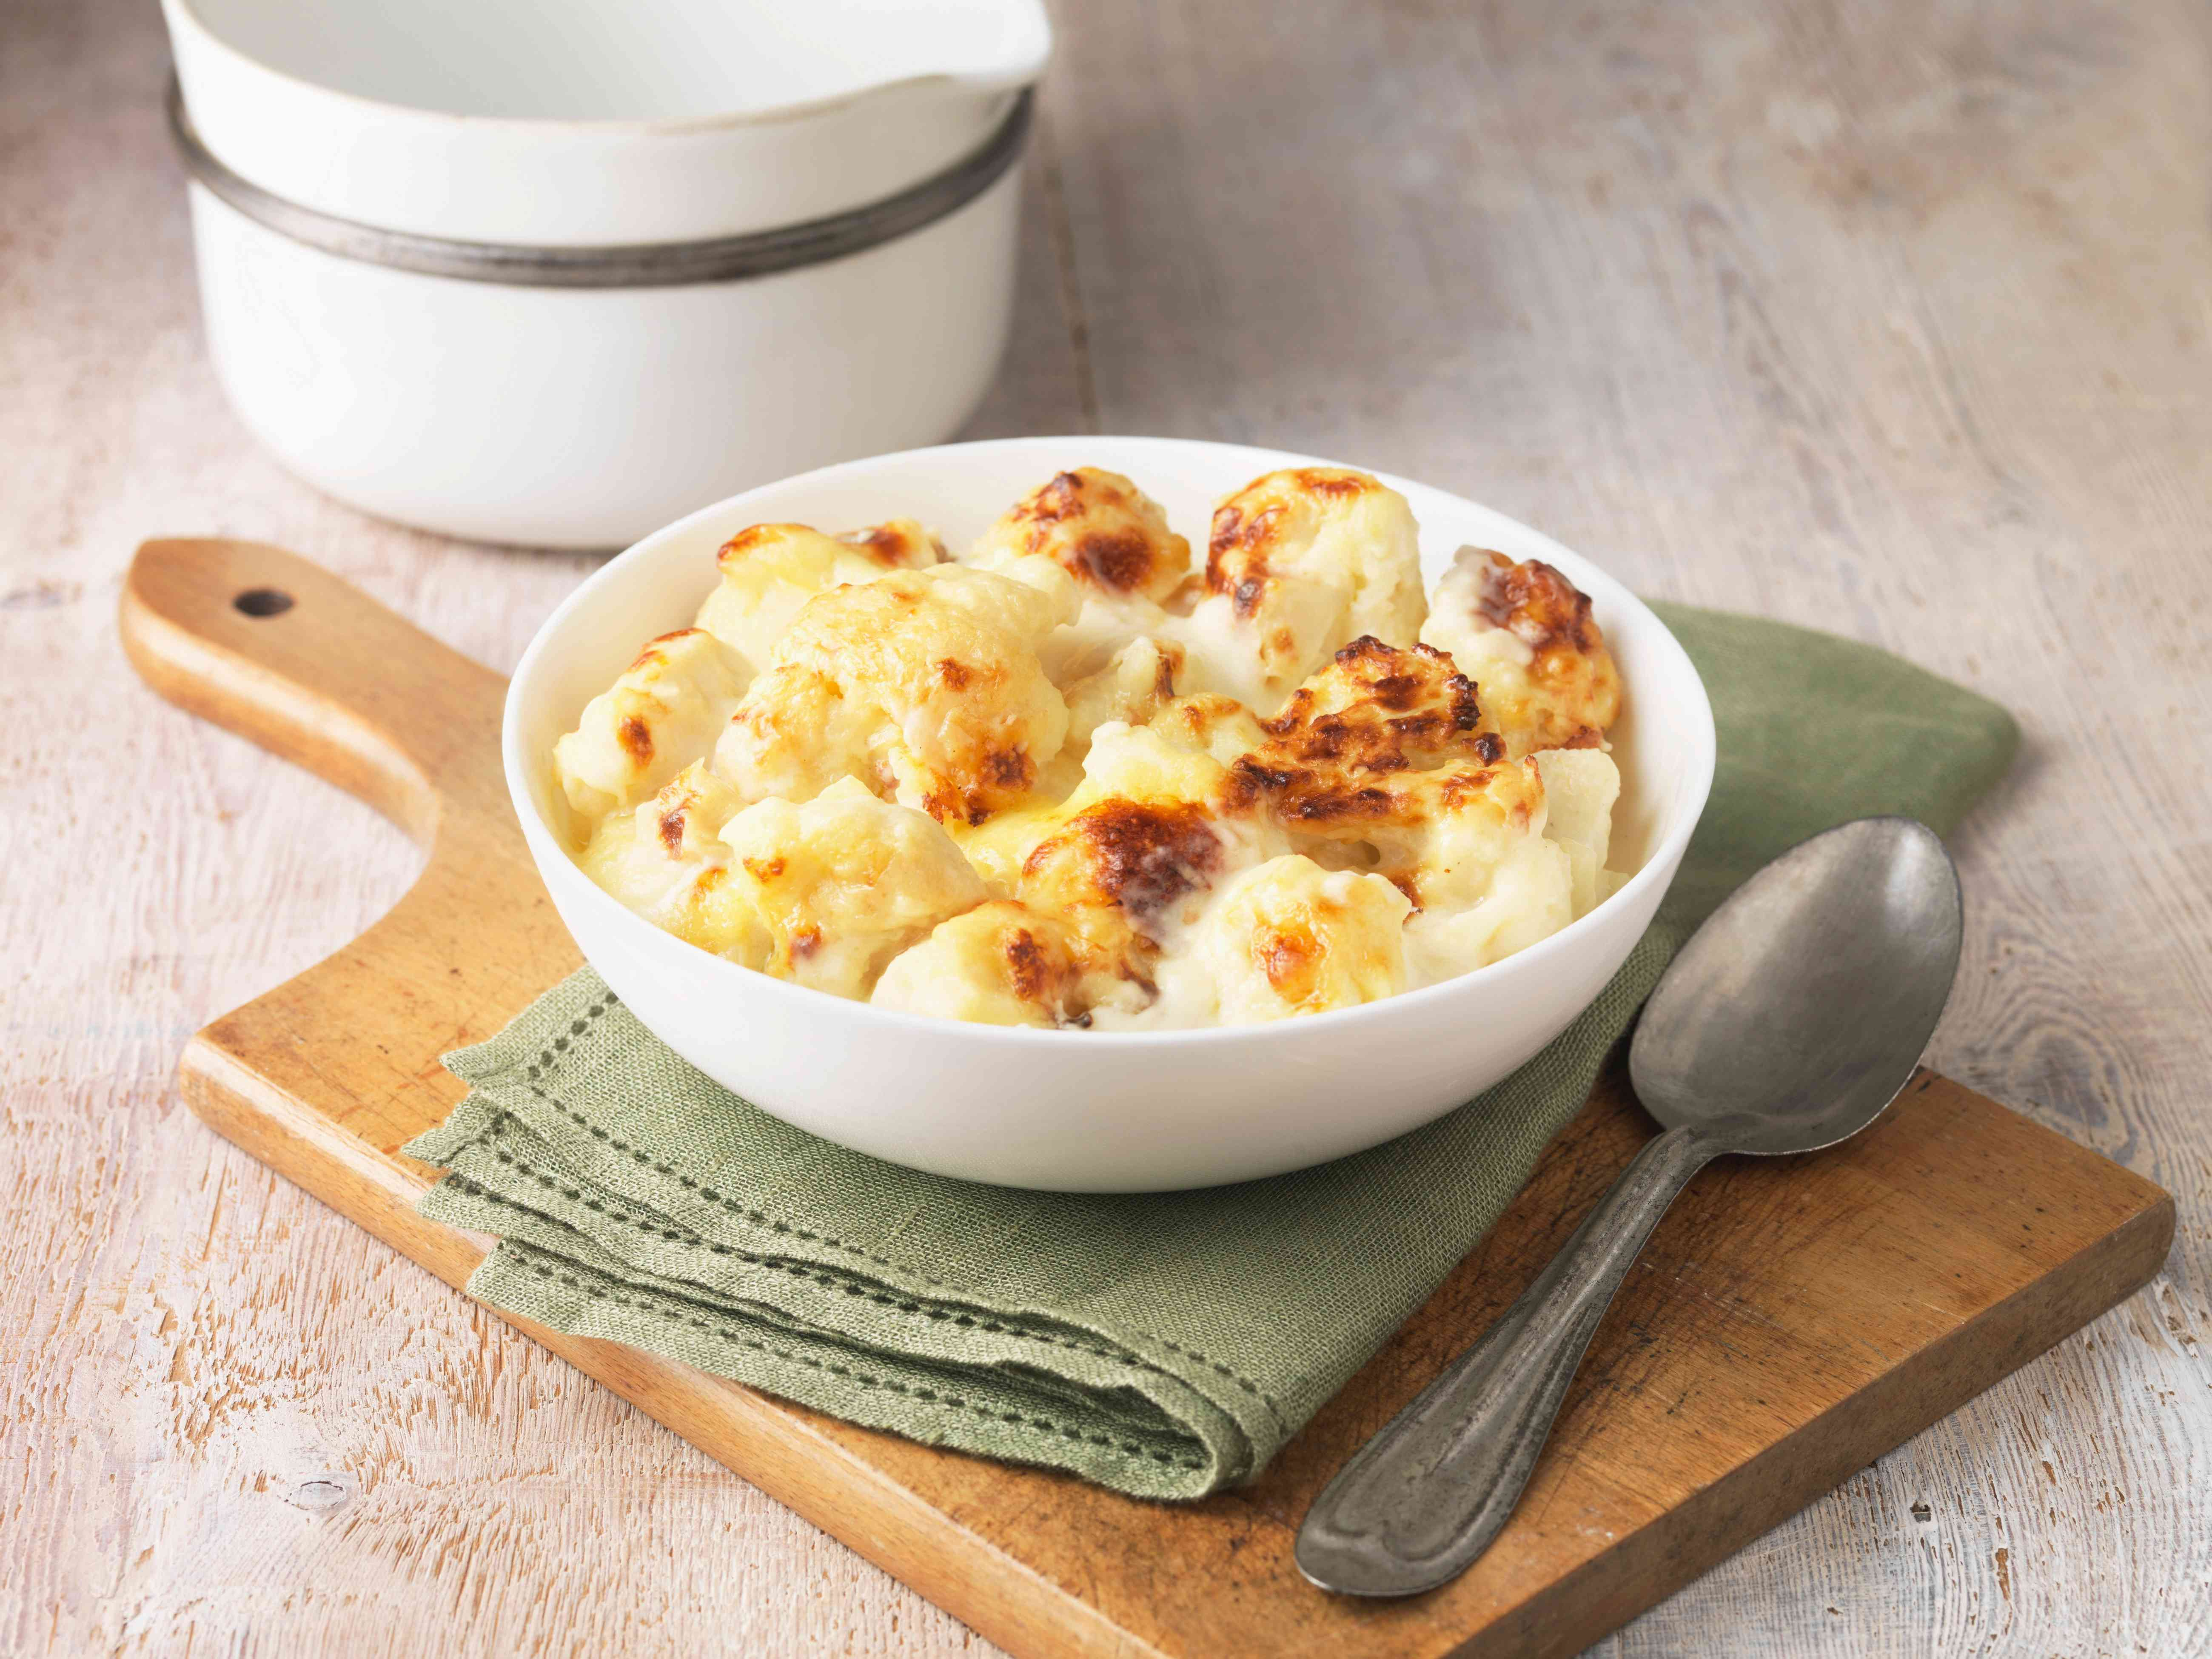 Cauliflower cheese in white bowl with green napkin and spoon